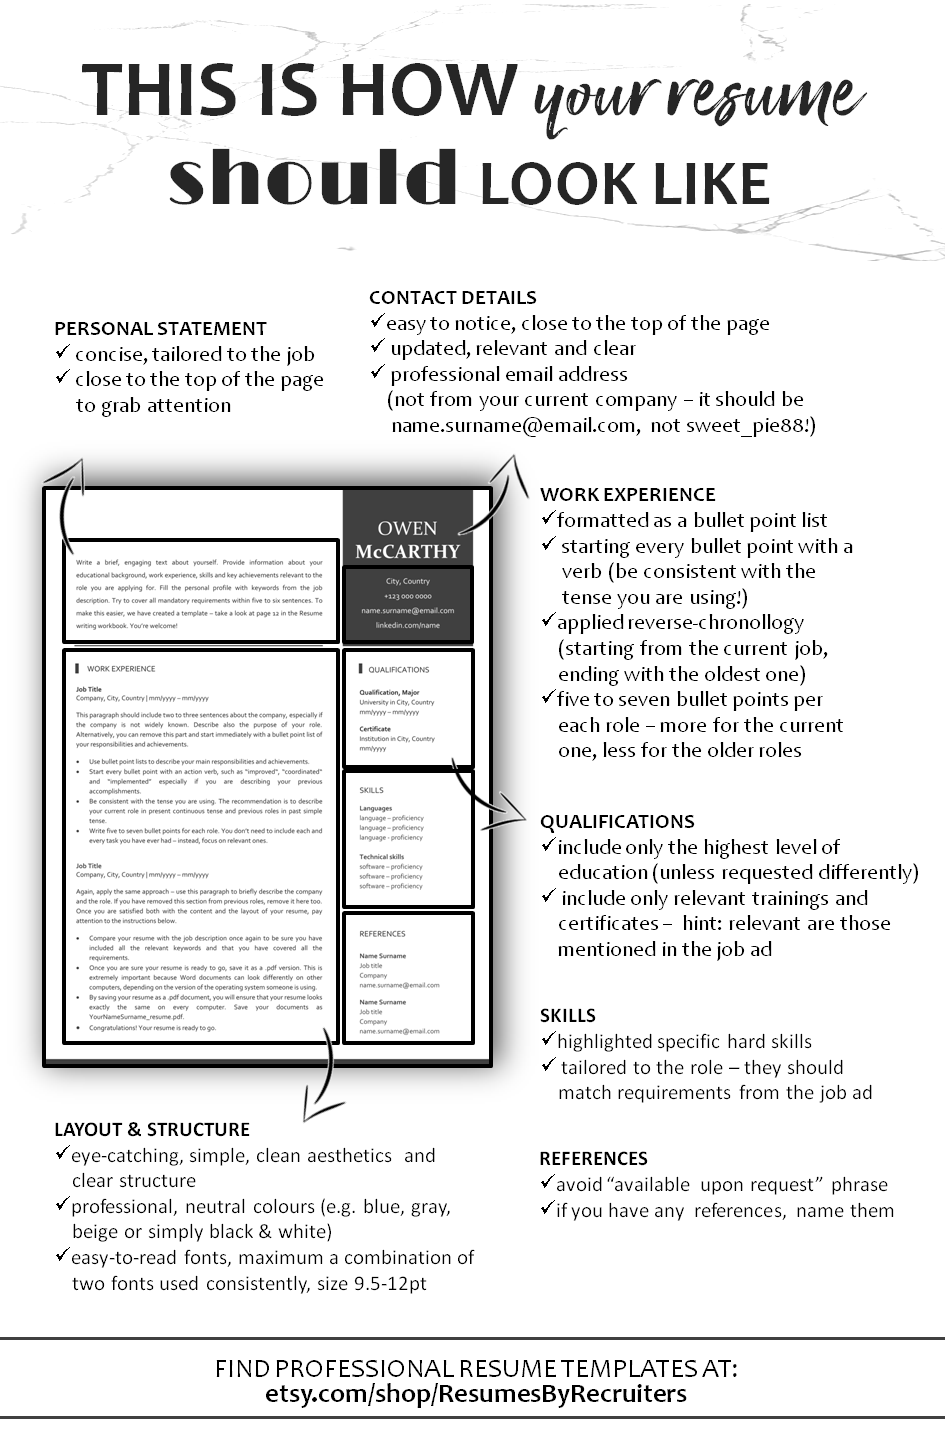 The Most Important Cv Writing Tips In One Place Find This And Many Other Professional Resume Templates At Cv Writing Tips Resume Writing Tips Teaching Resume